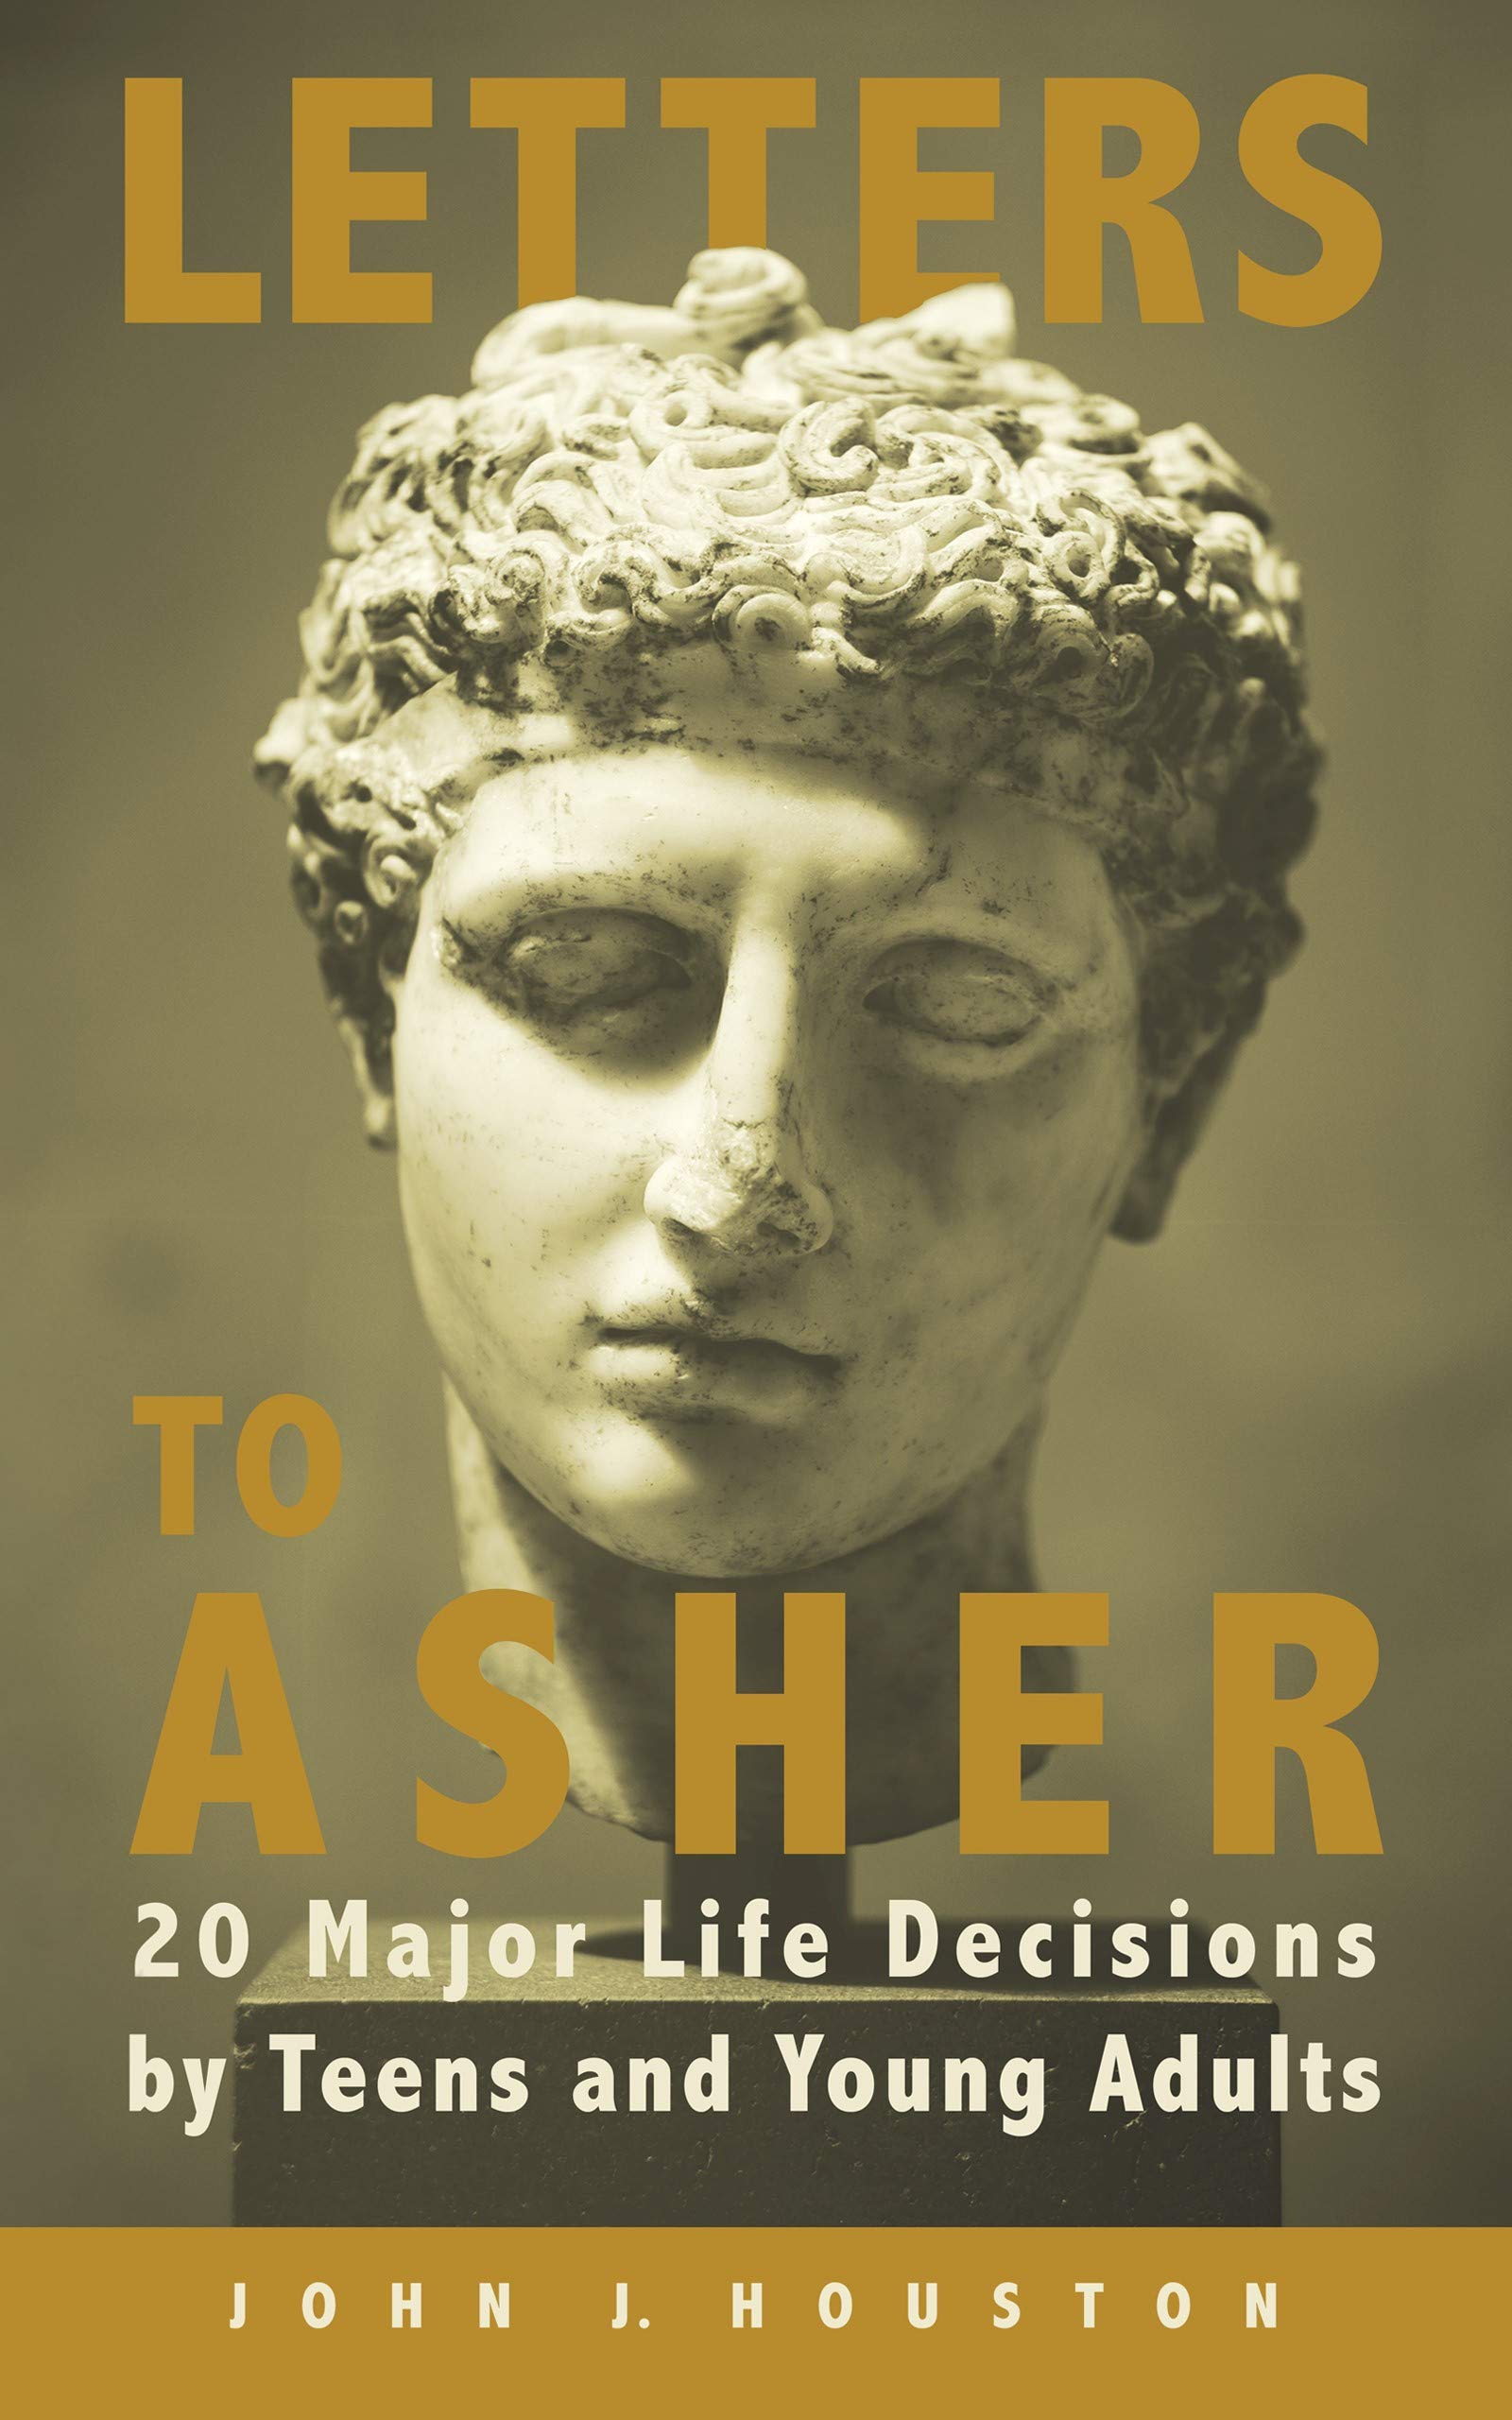 Letters to Asher: 20 Major Life Decisions by Teens and Young Adults